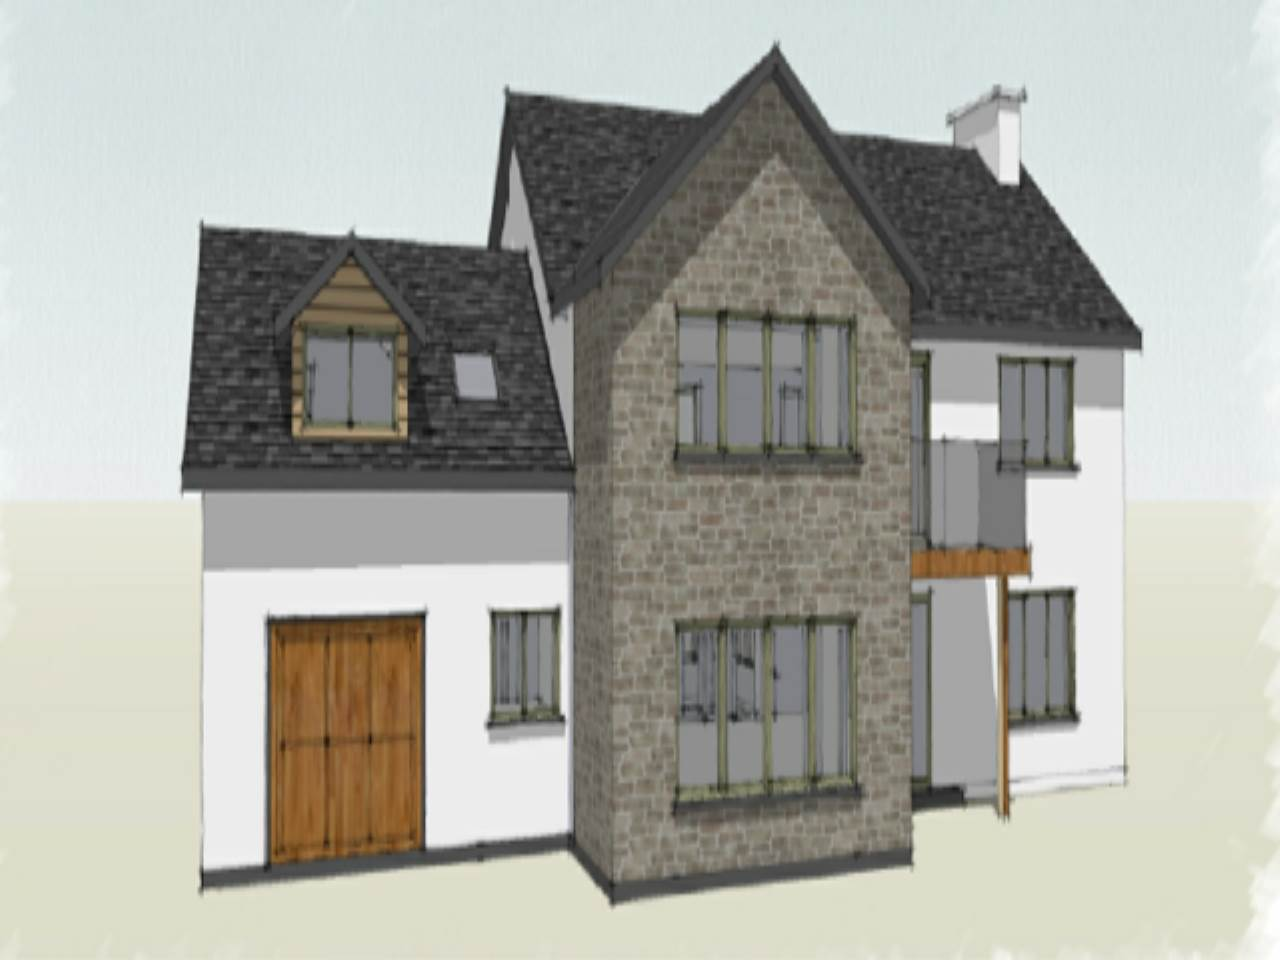 5 bed detached-house for sale in Llandre, SY24